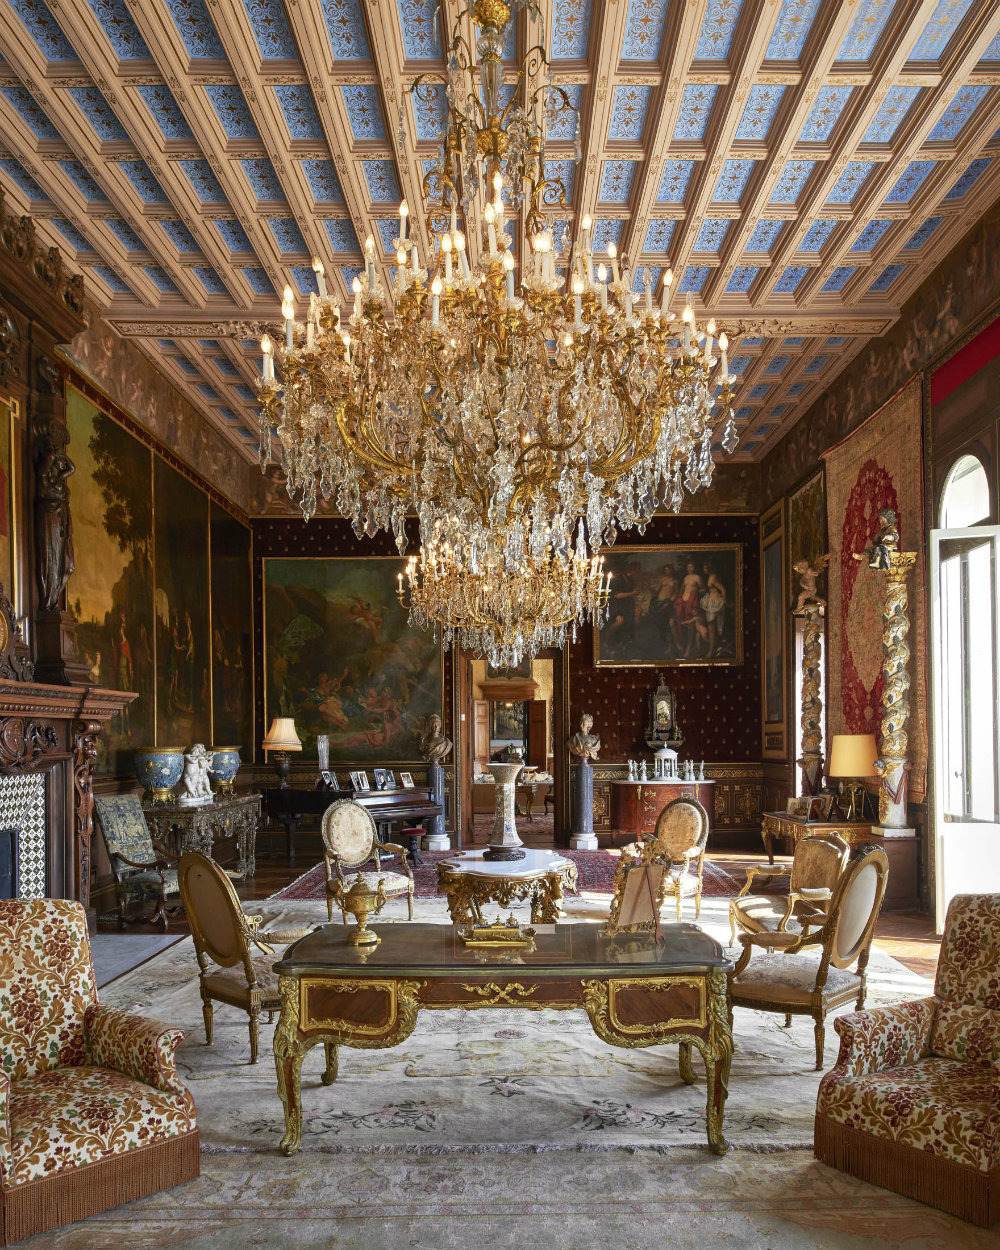 Best Houses In the World Pictures Fresh Take A Look Inside the Most Expensive House In the World